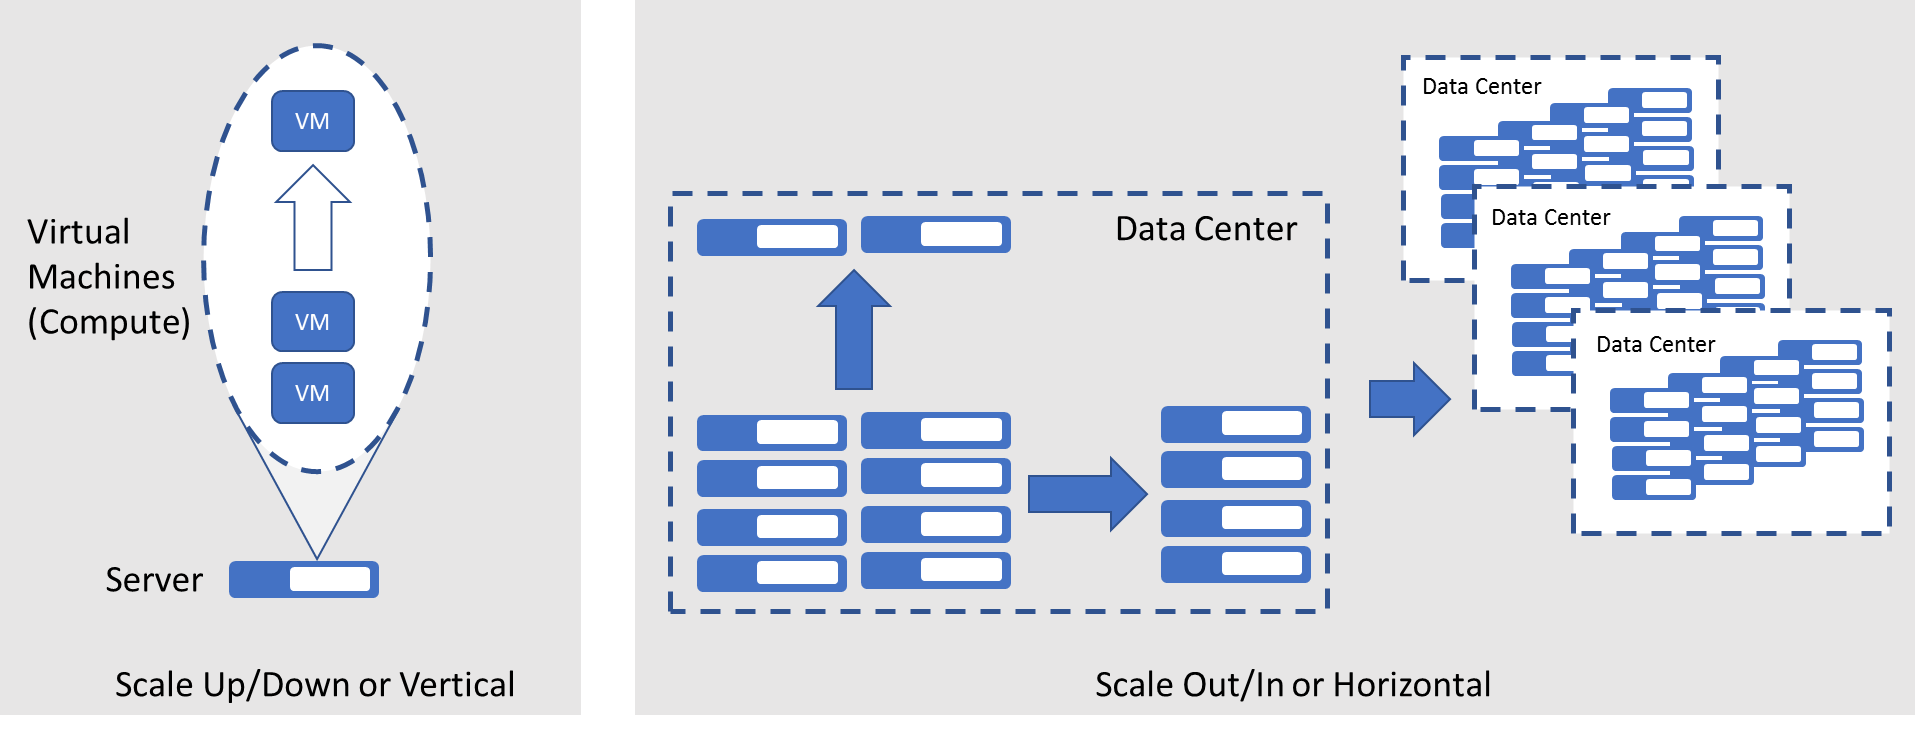 Data Center: Scale Up and Out